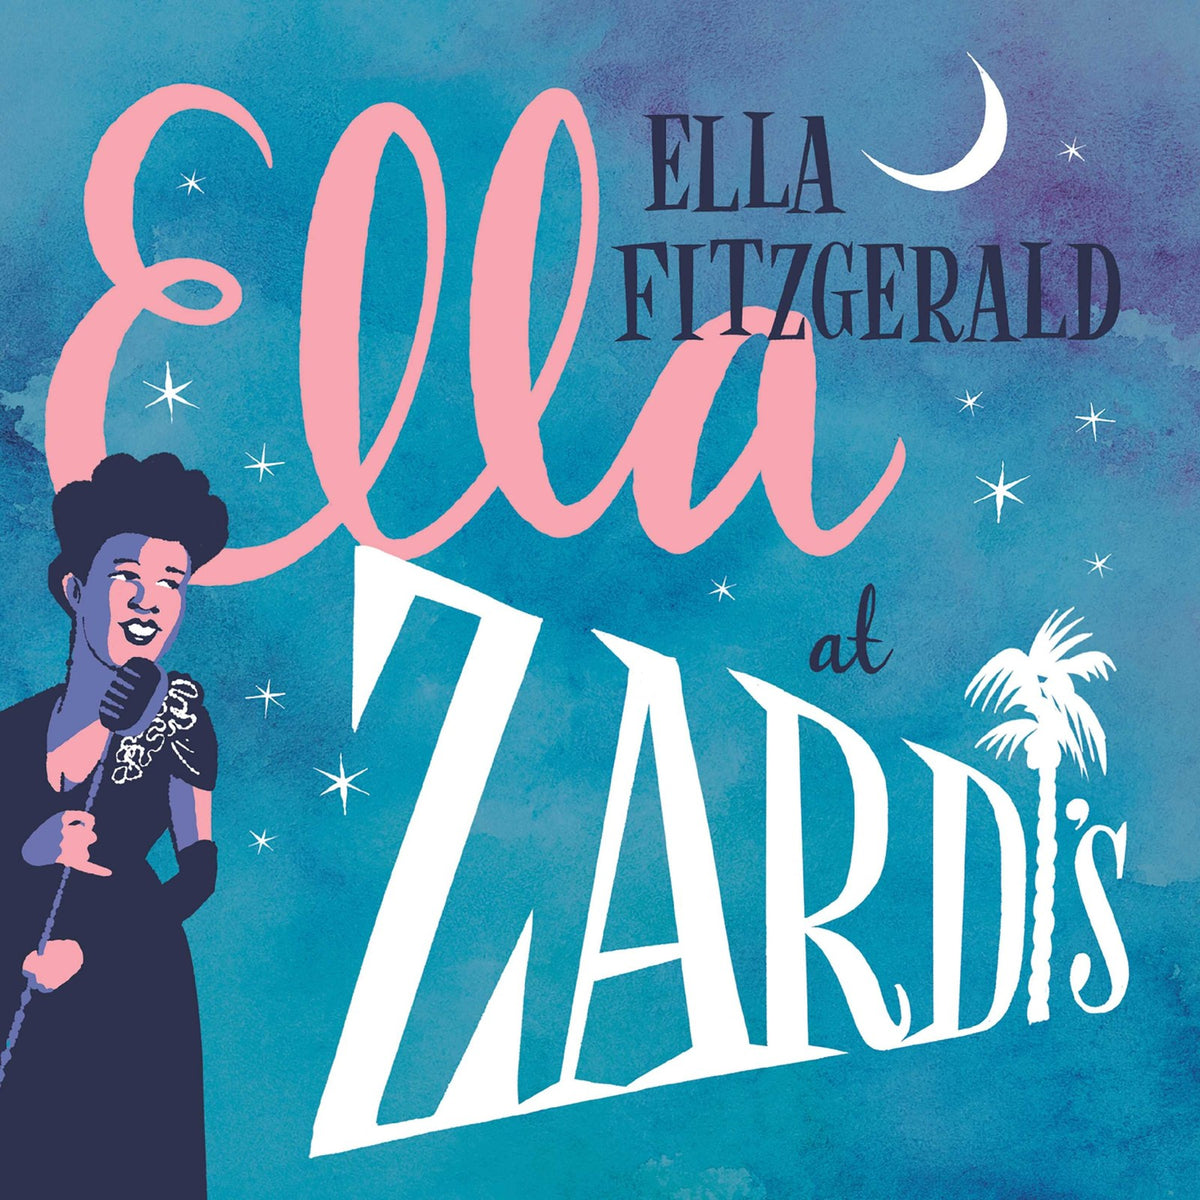 Ella Fitzgerald: Ella At Zardi's (180g, Colored Vinyl) Vinyl 2LP (Record Store Day)